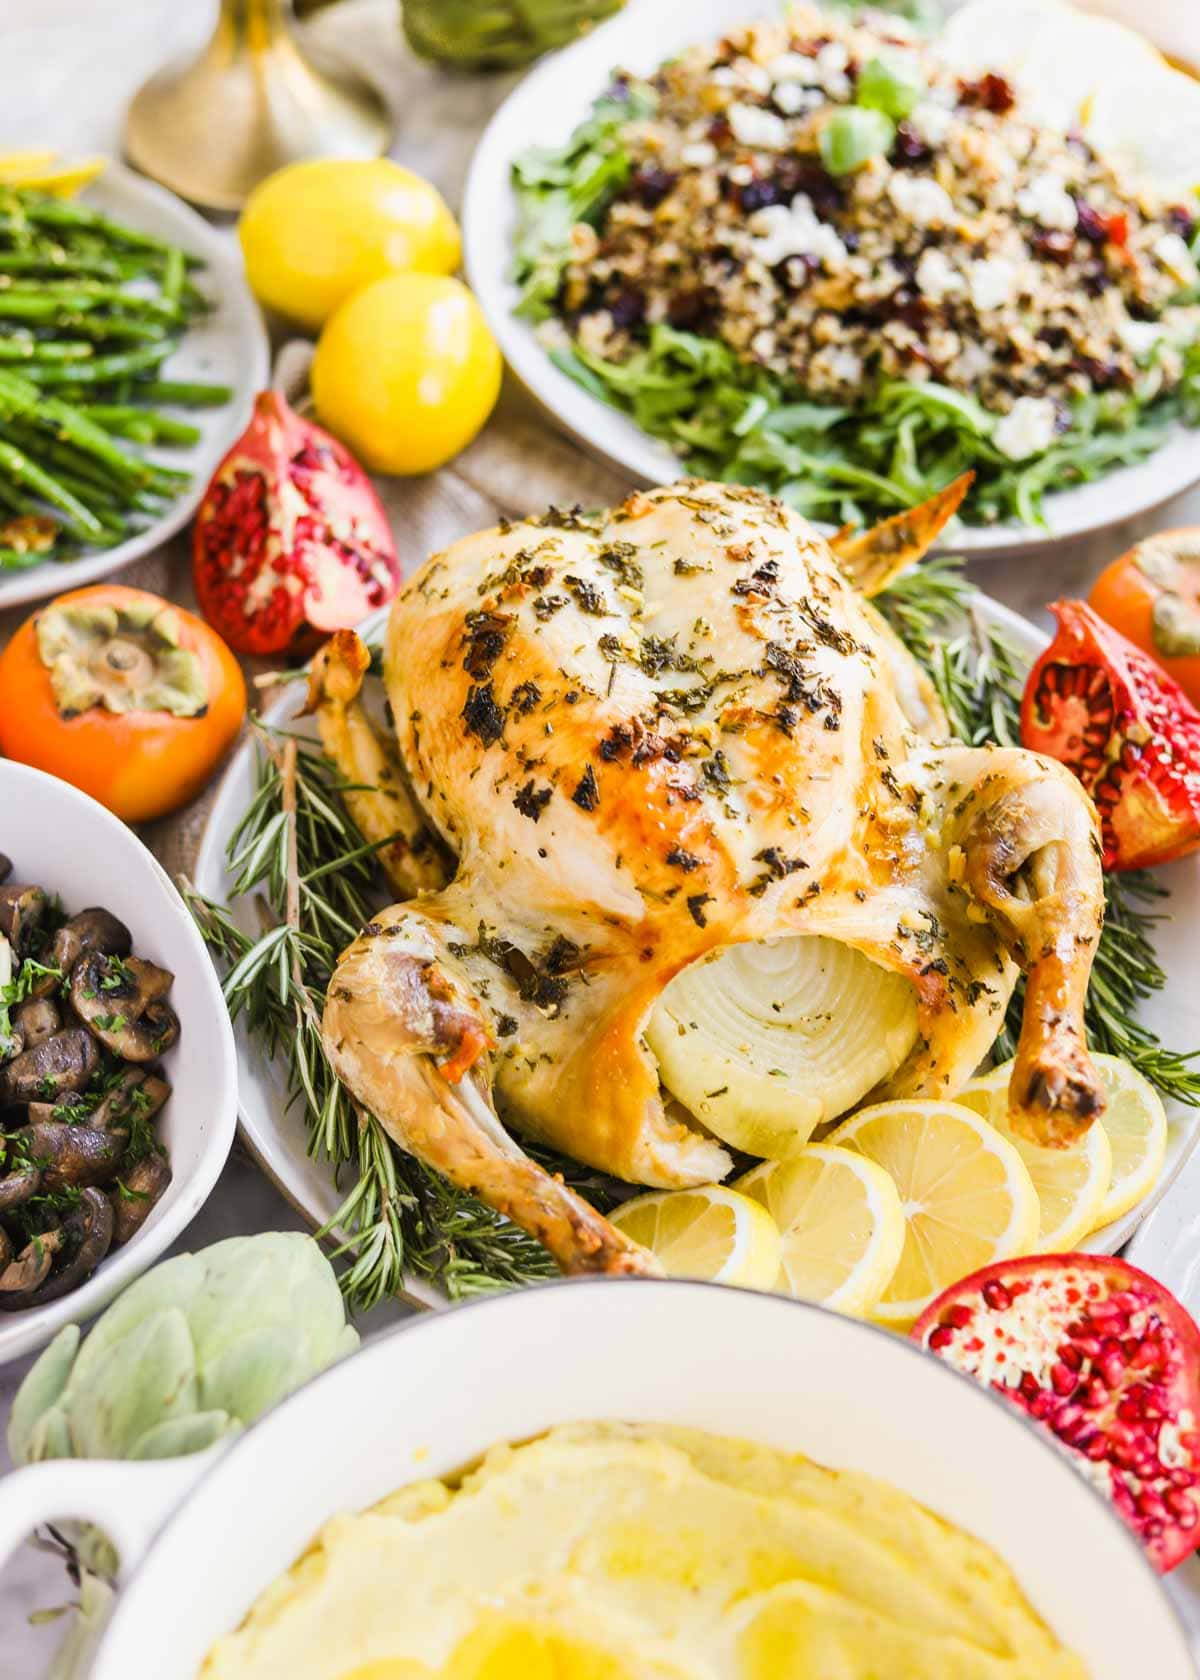 Whole roast chicken on plate stuffed with onion with lemons, artichokes, persimmons, pomegranates, and side dishes in background.